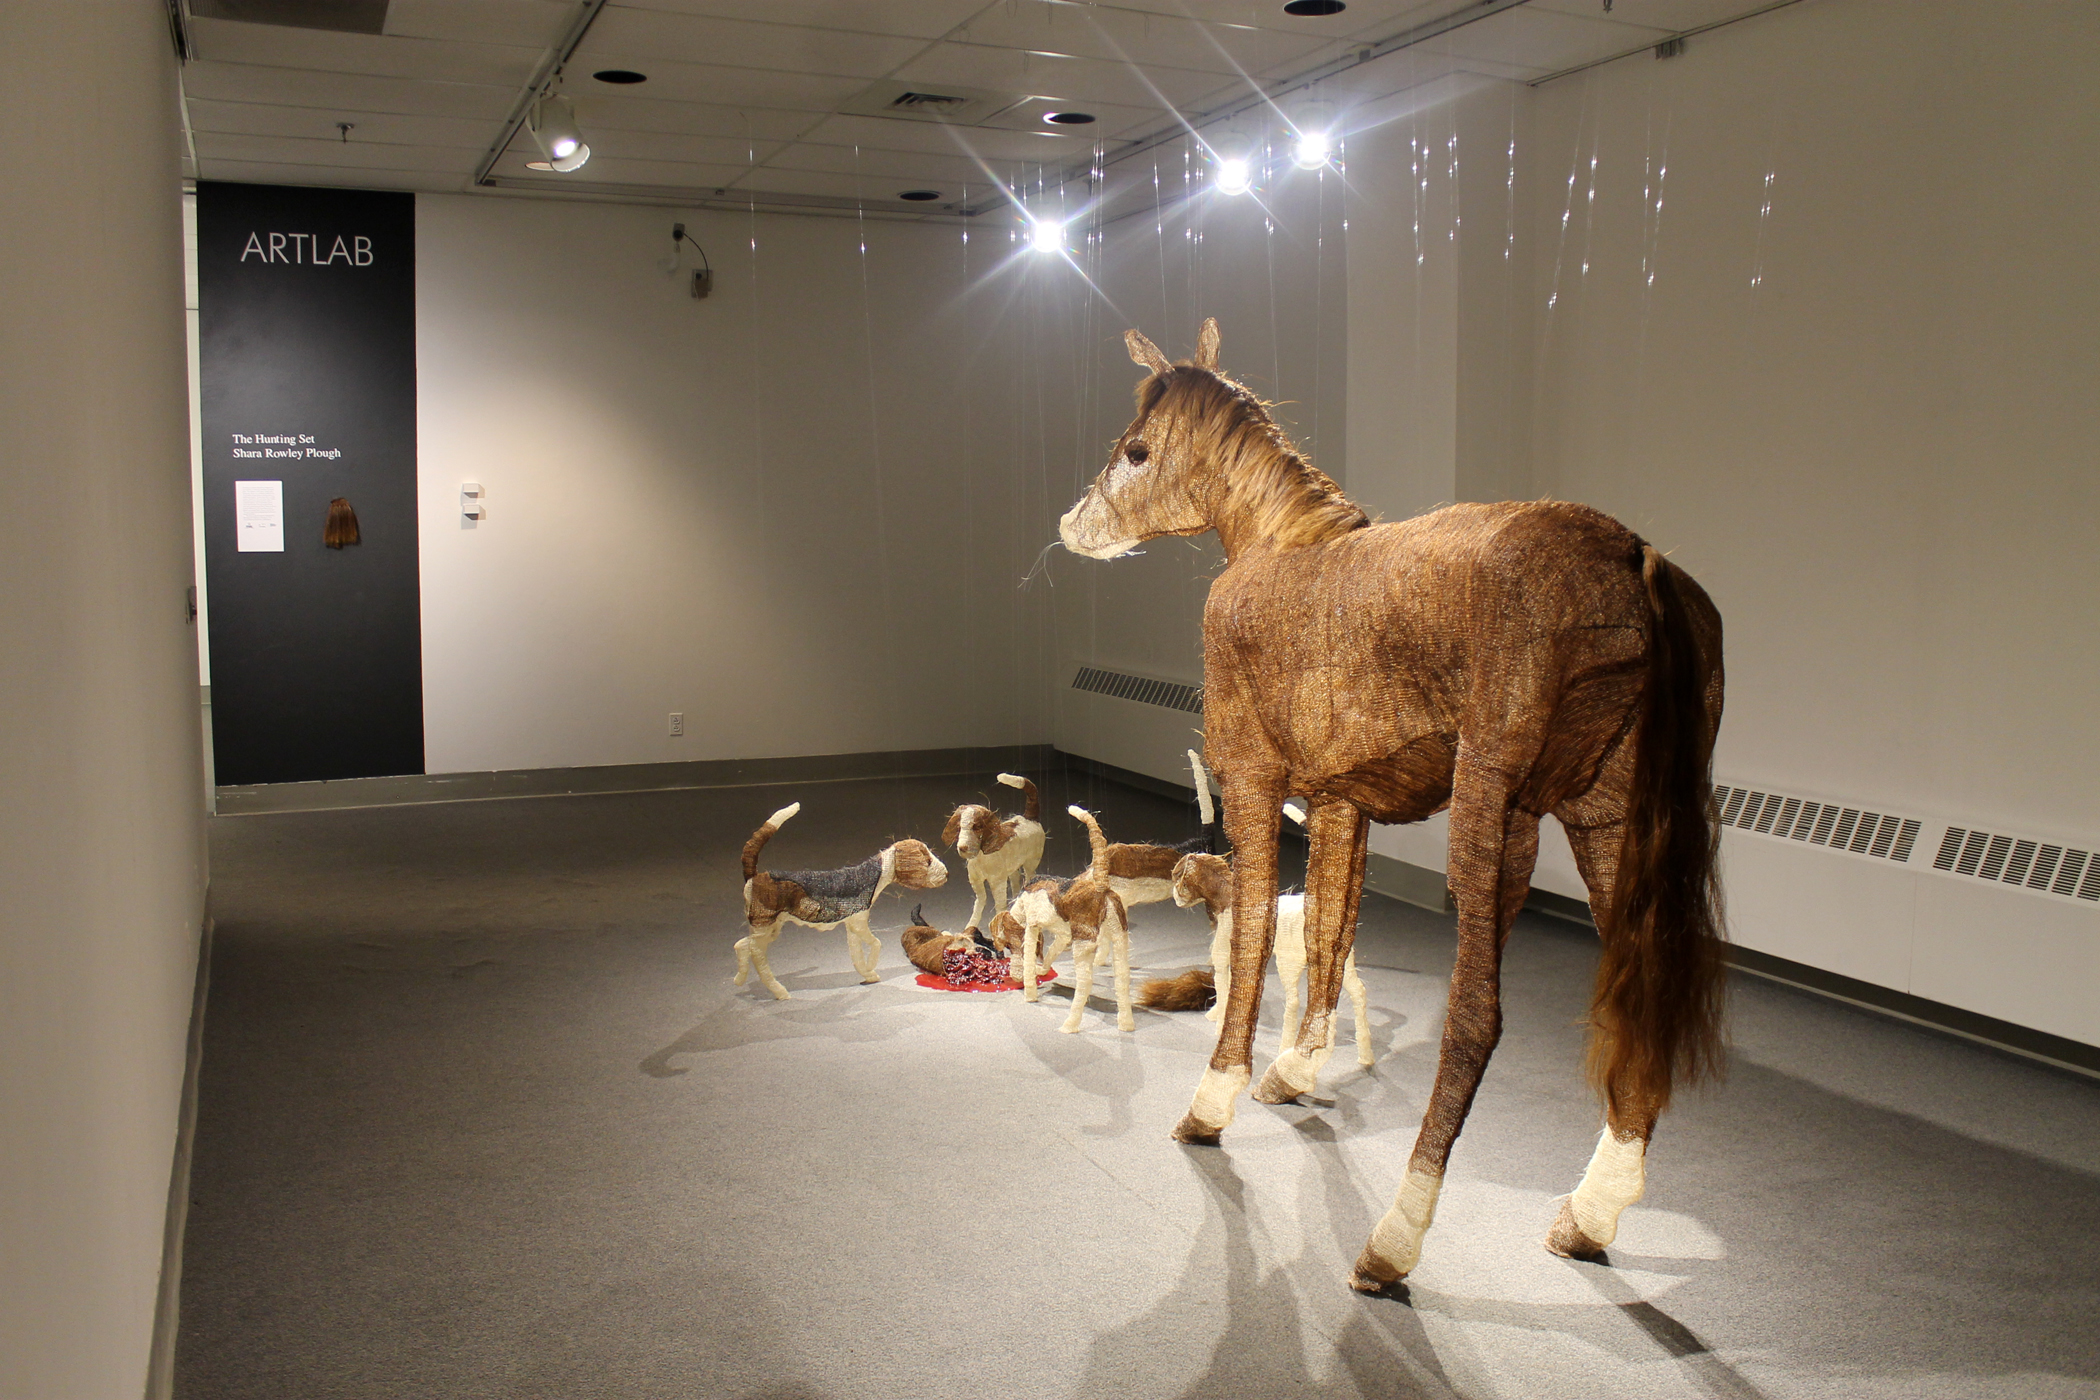 'The Hunting Set,' Horsehair, monofilament, nylon fabric, glass, acrylic paint, and resin. 2014. Art Lab at the Art Museum at the University of Memphis, July 11 - September 12, 2014. This project was funded in part by a grant from the Mississippi Arts Commission.